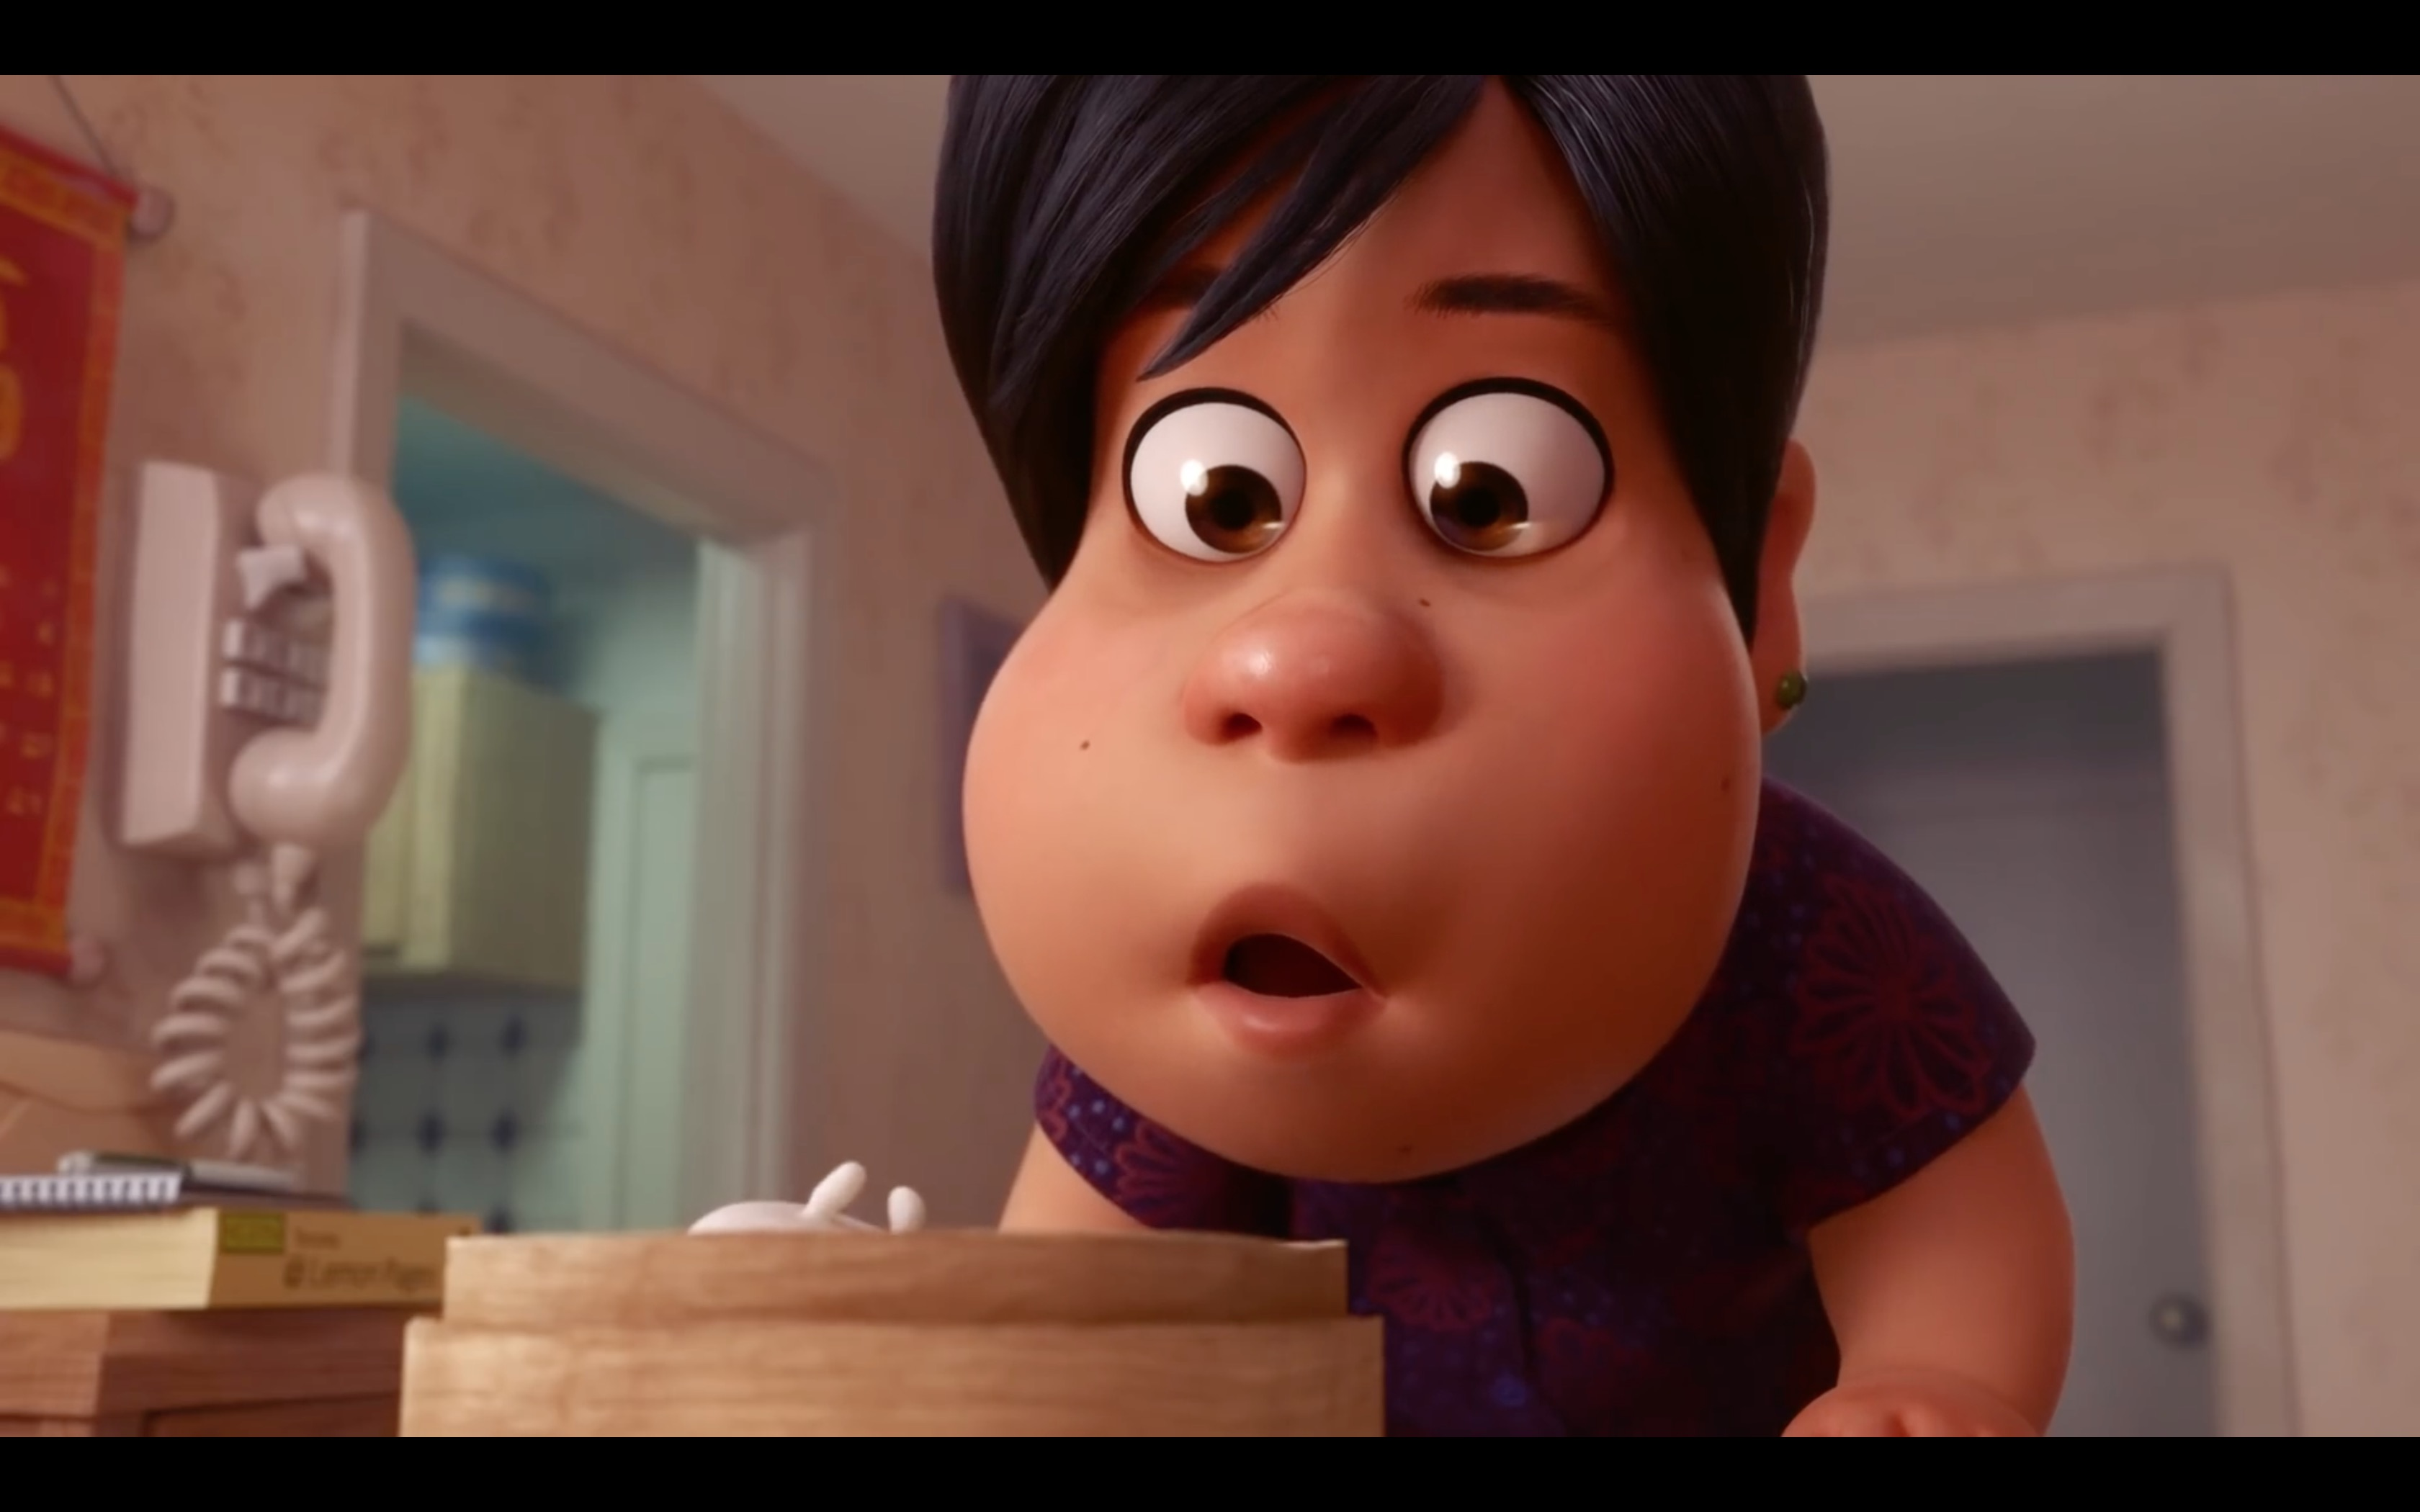 Pixar Animated Short: Bao